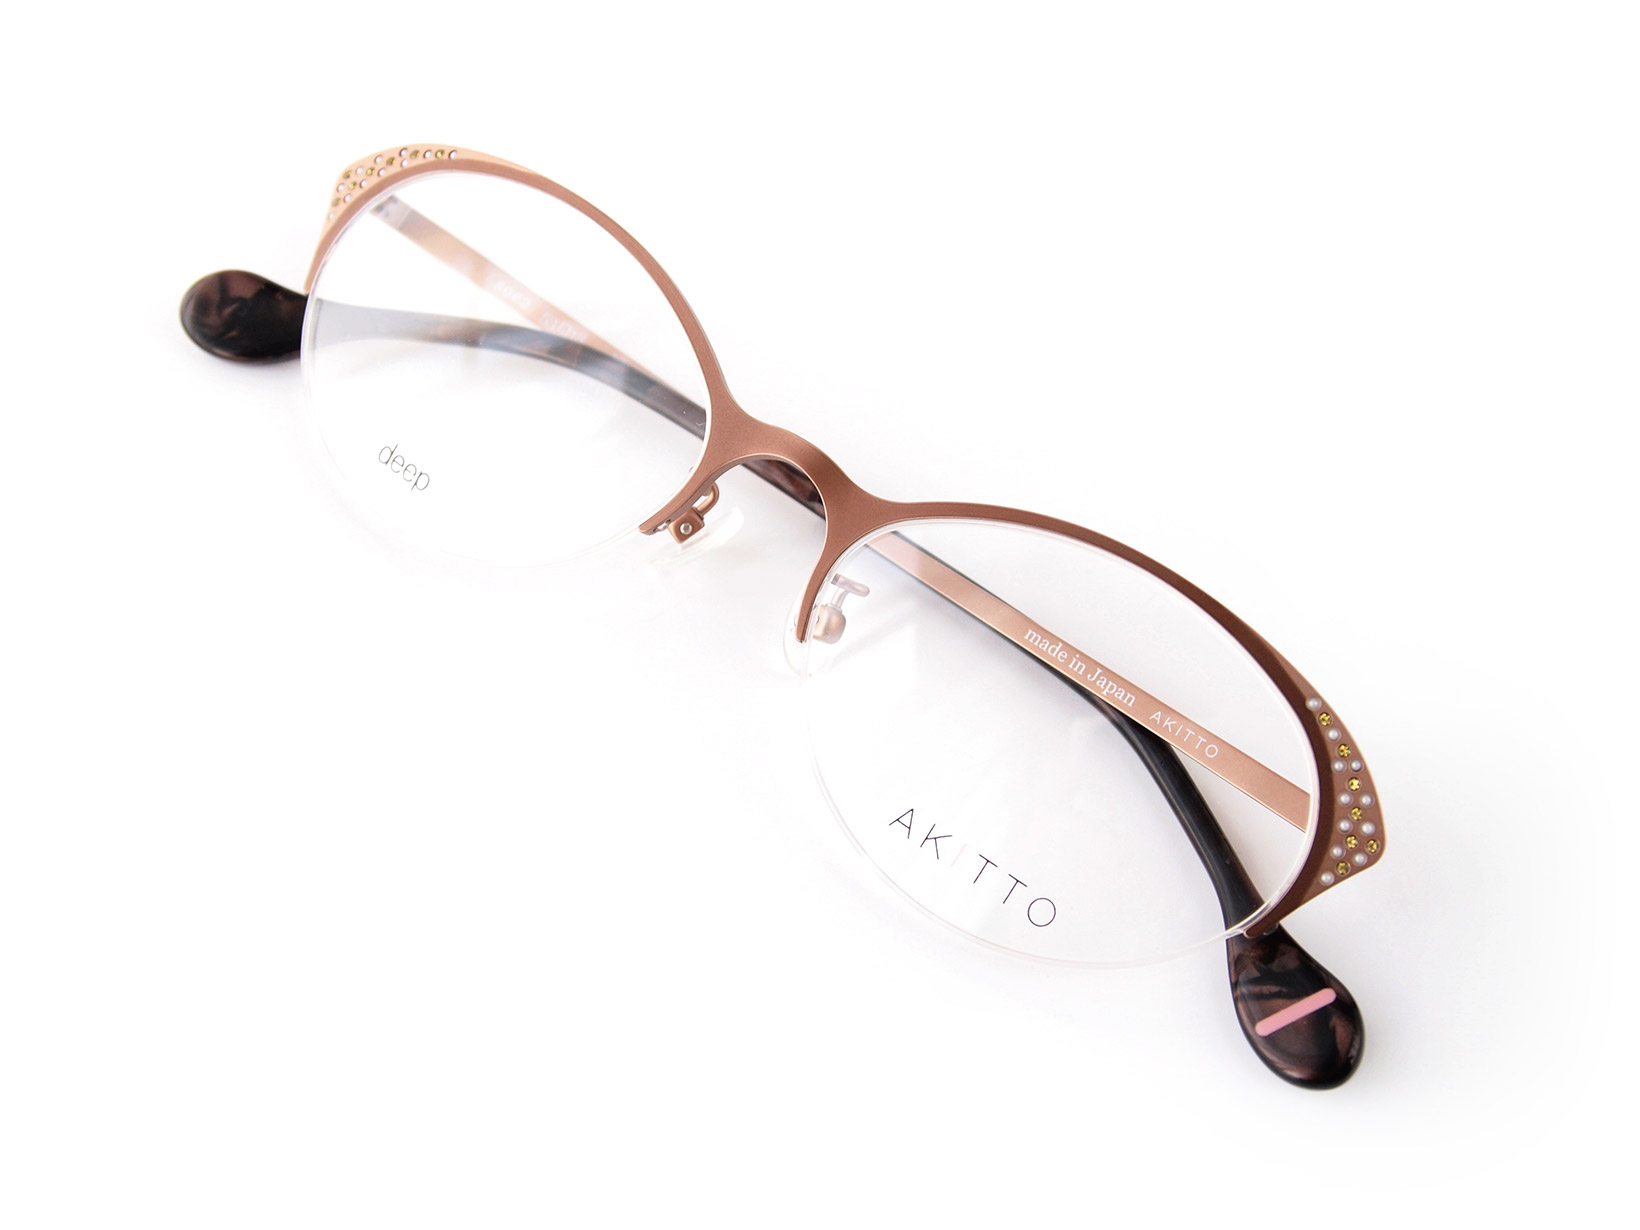 AKITTO 2015-4th soe2 color|MA size:53□18 material:titanium+swarovski price:44,500-(+tax)